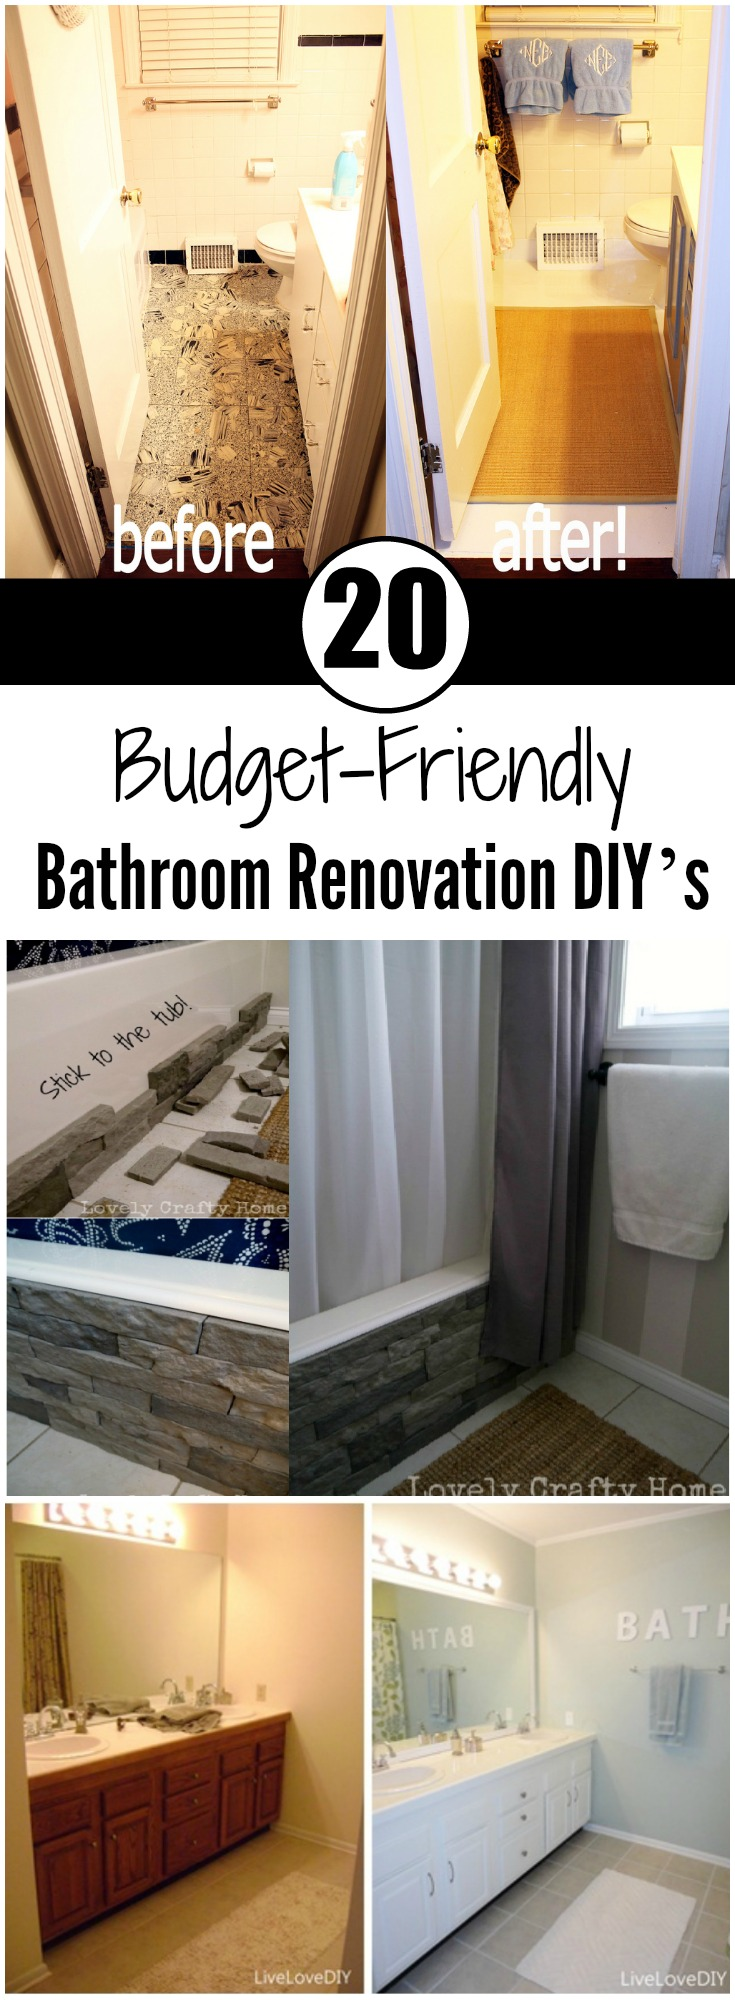 BudgetFriendly Bathroom Renovation DIYs Ritely - Budget friendly bathroom remodels